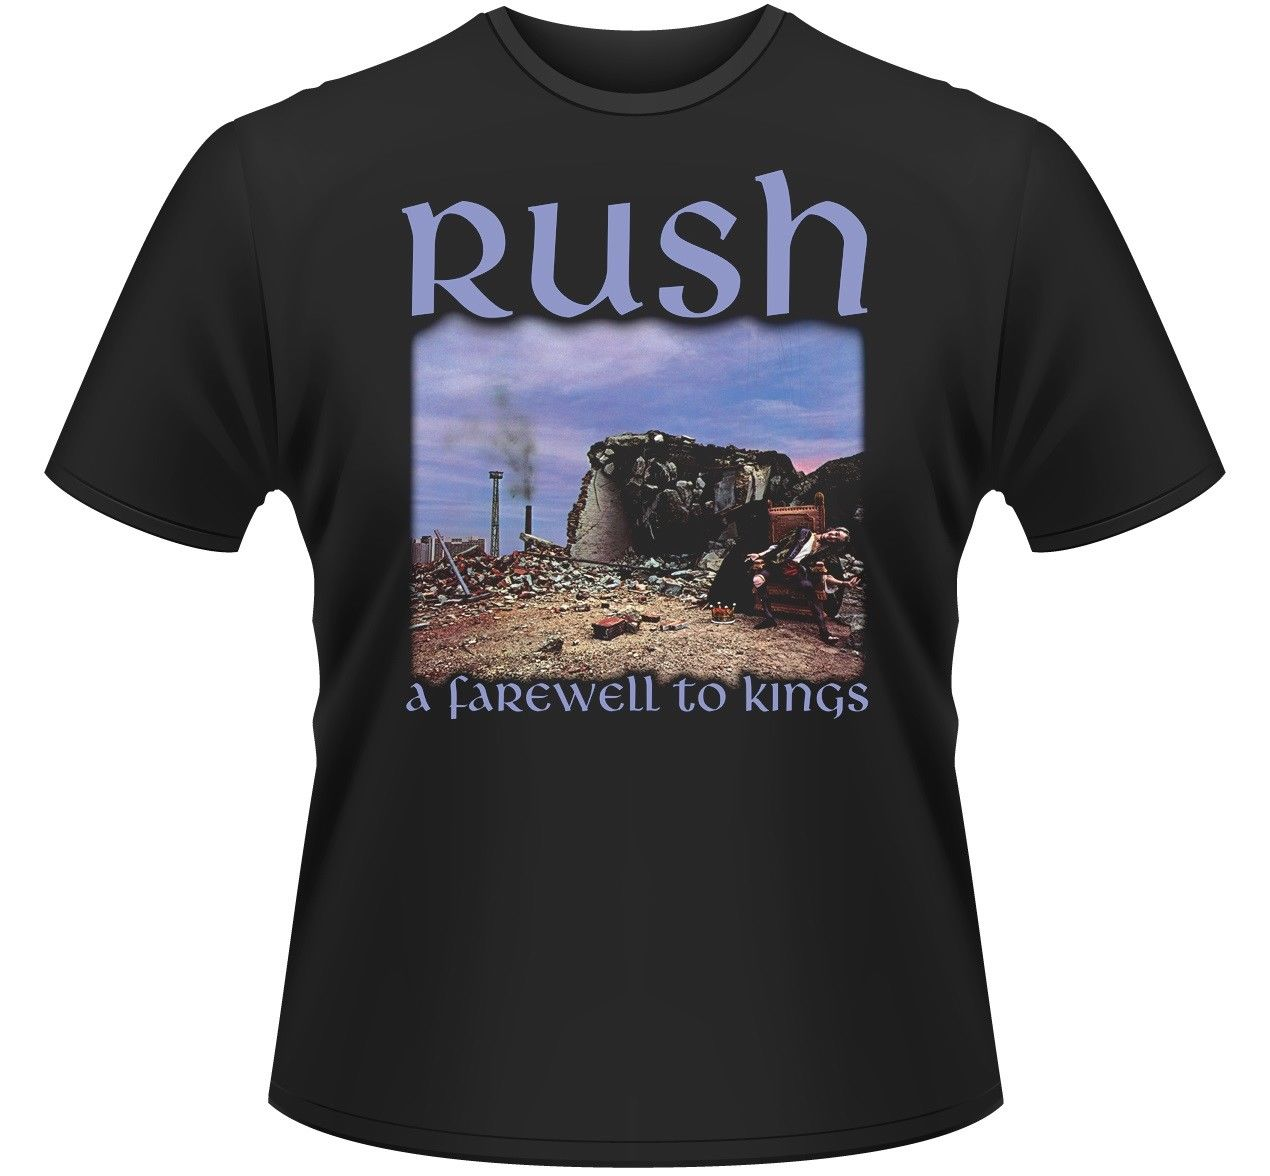 RUSH A FAREWELL TO KINGS T-SHIRT - NUOVO E ORIGINALE New 2018 Cotton Short-Sleeve T-Shirt